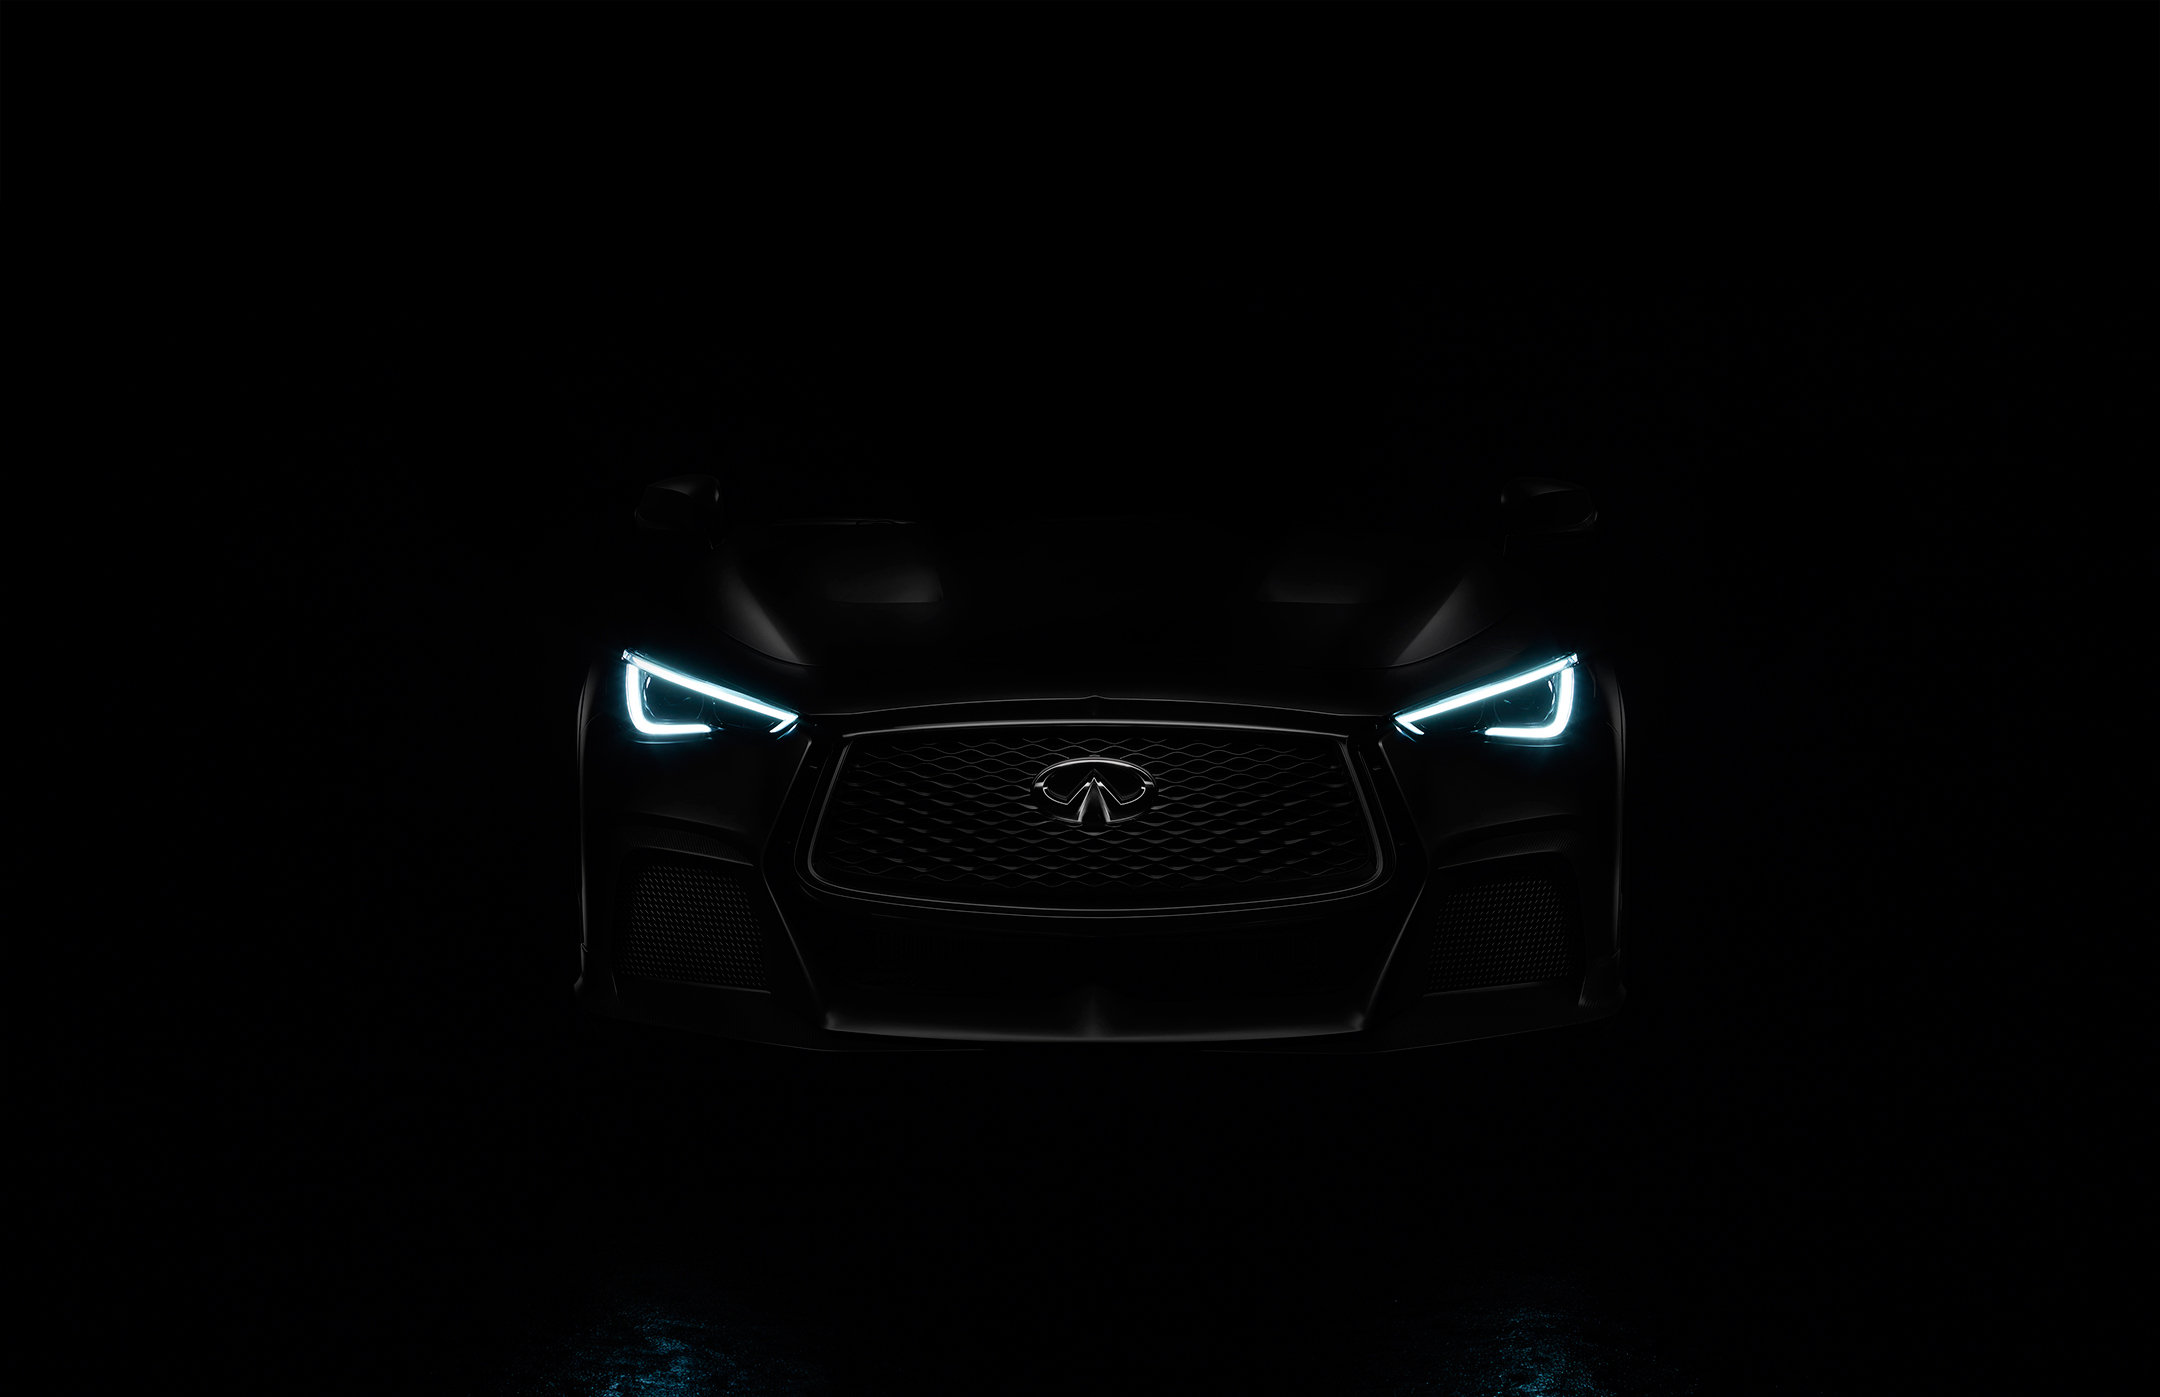 INFINITI Project Black S - 2017 - front light - Teaser